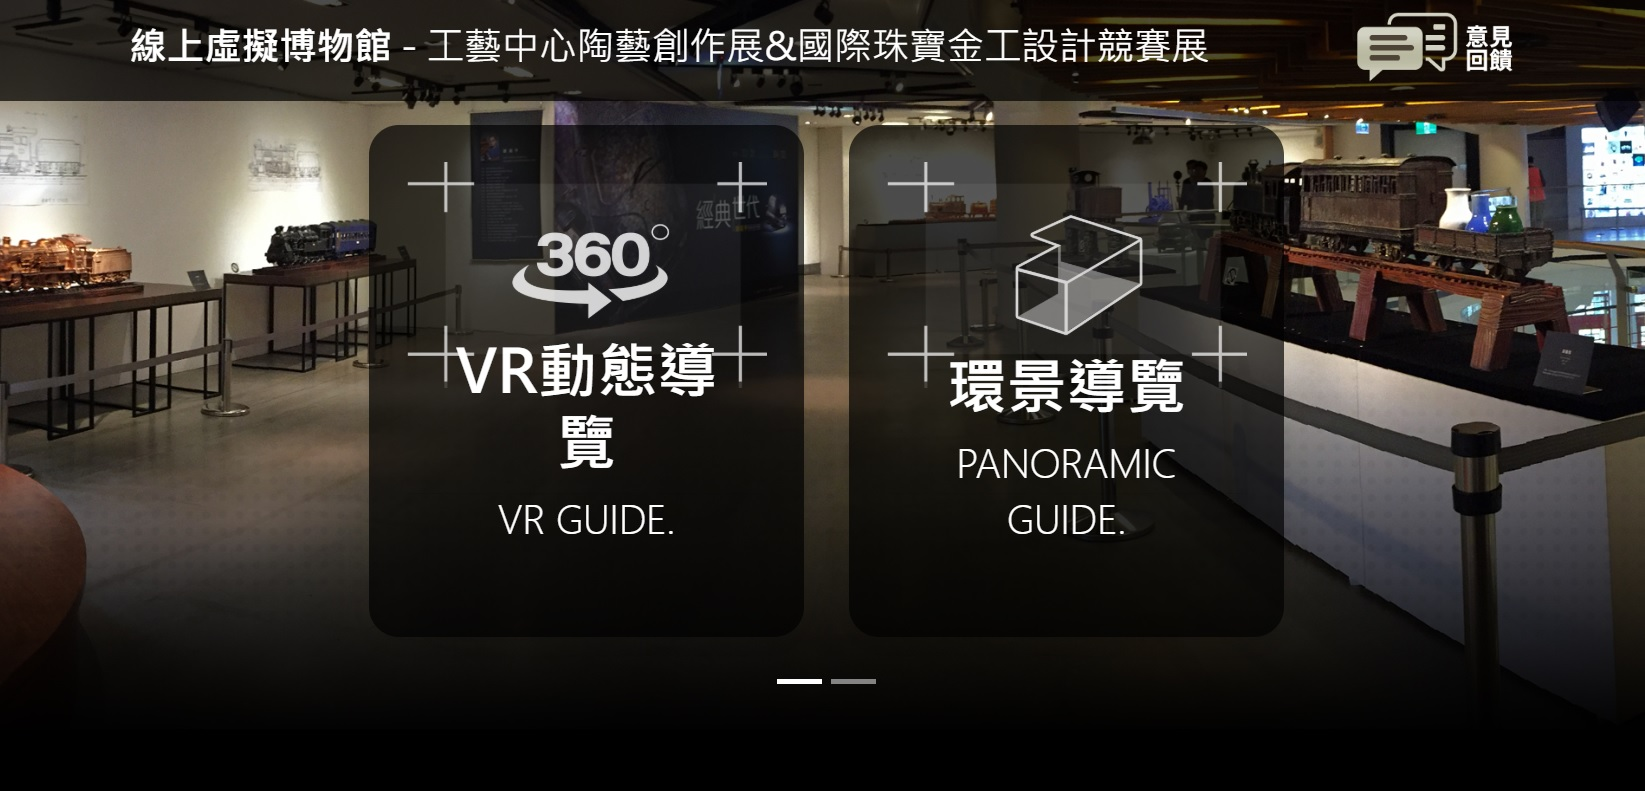 Taiwan launches interactive platform for exploring art in 3D, VR